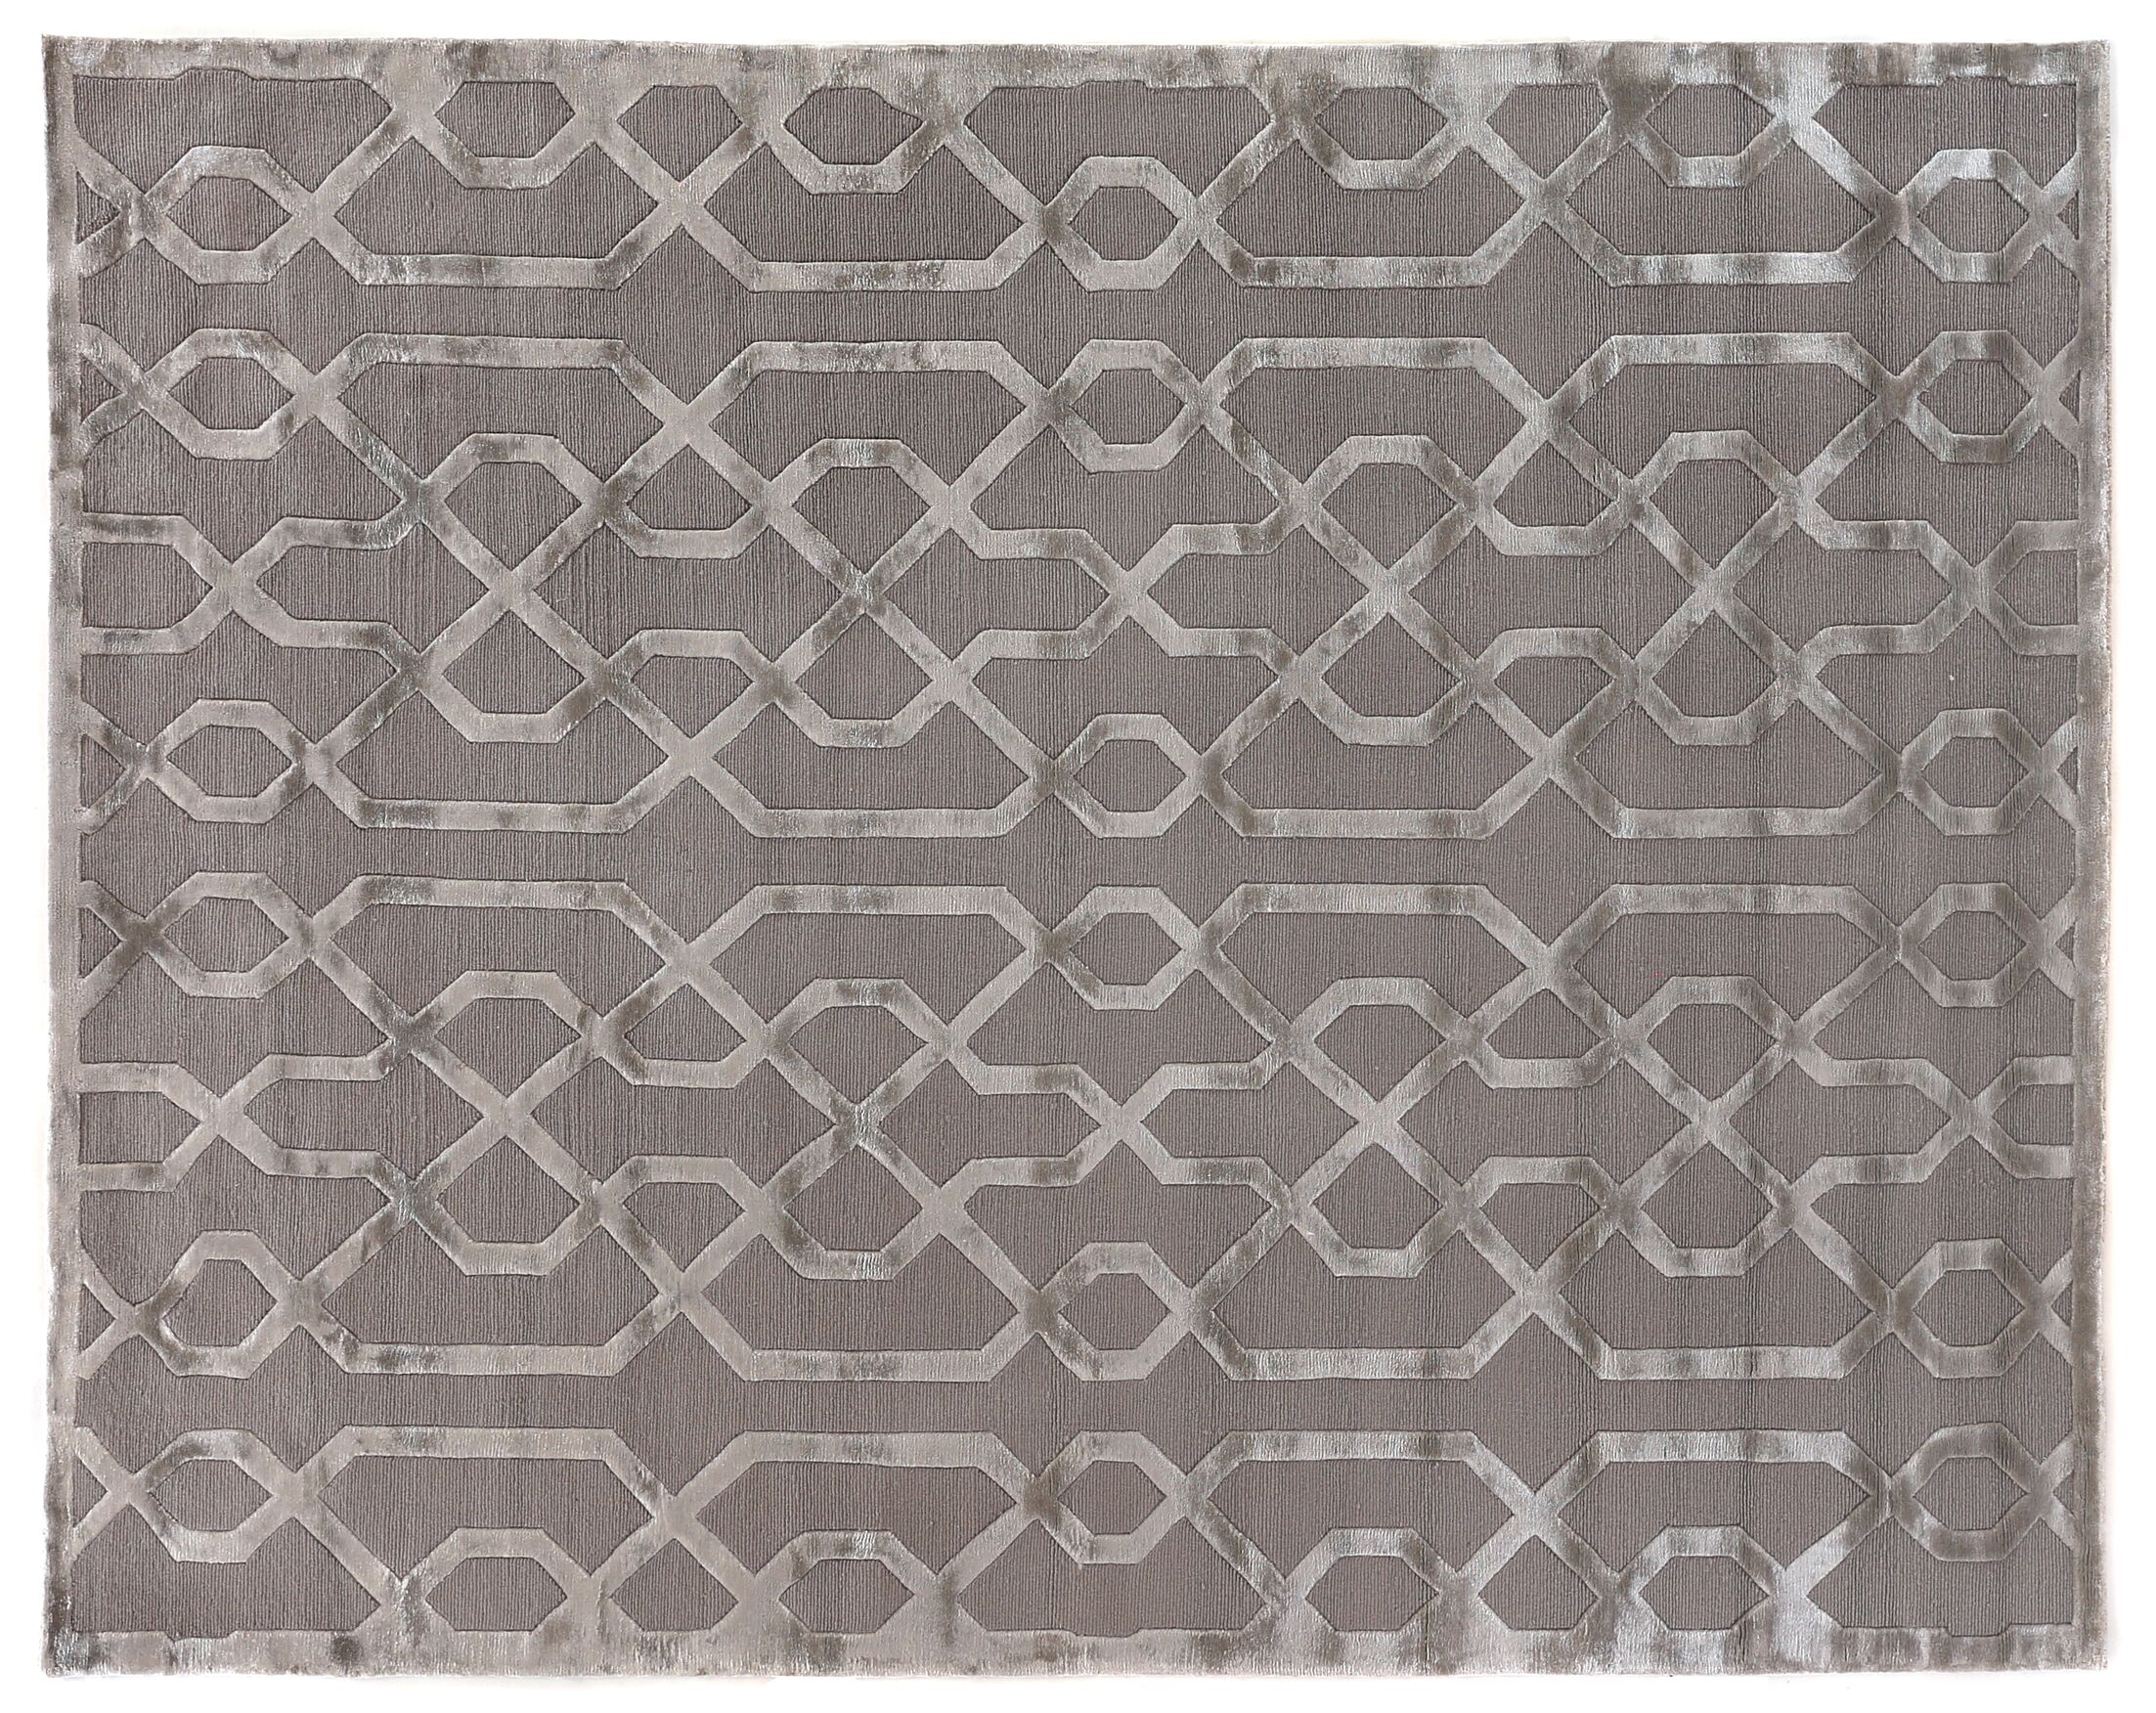 Hand-Knotted Wool/Silk Silver/Gray Area Rug Rug Size: Rectangle 14' x 18'